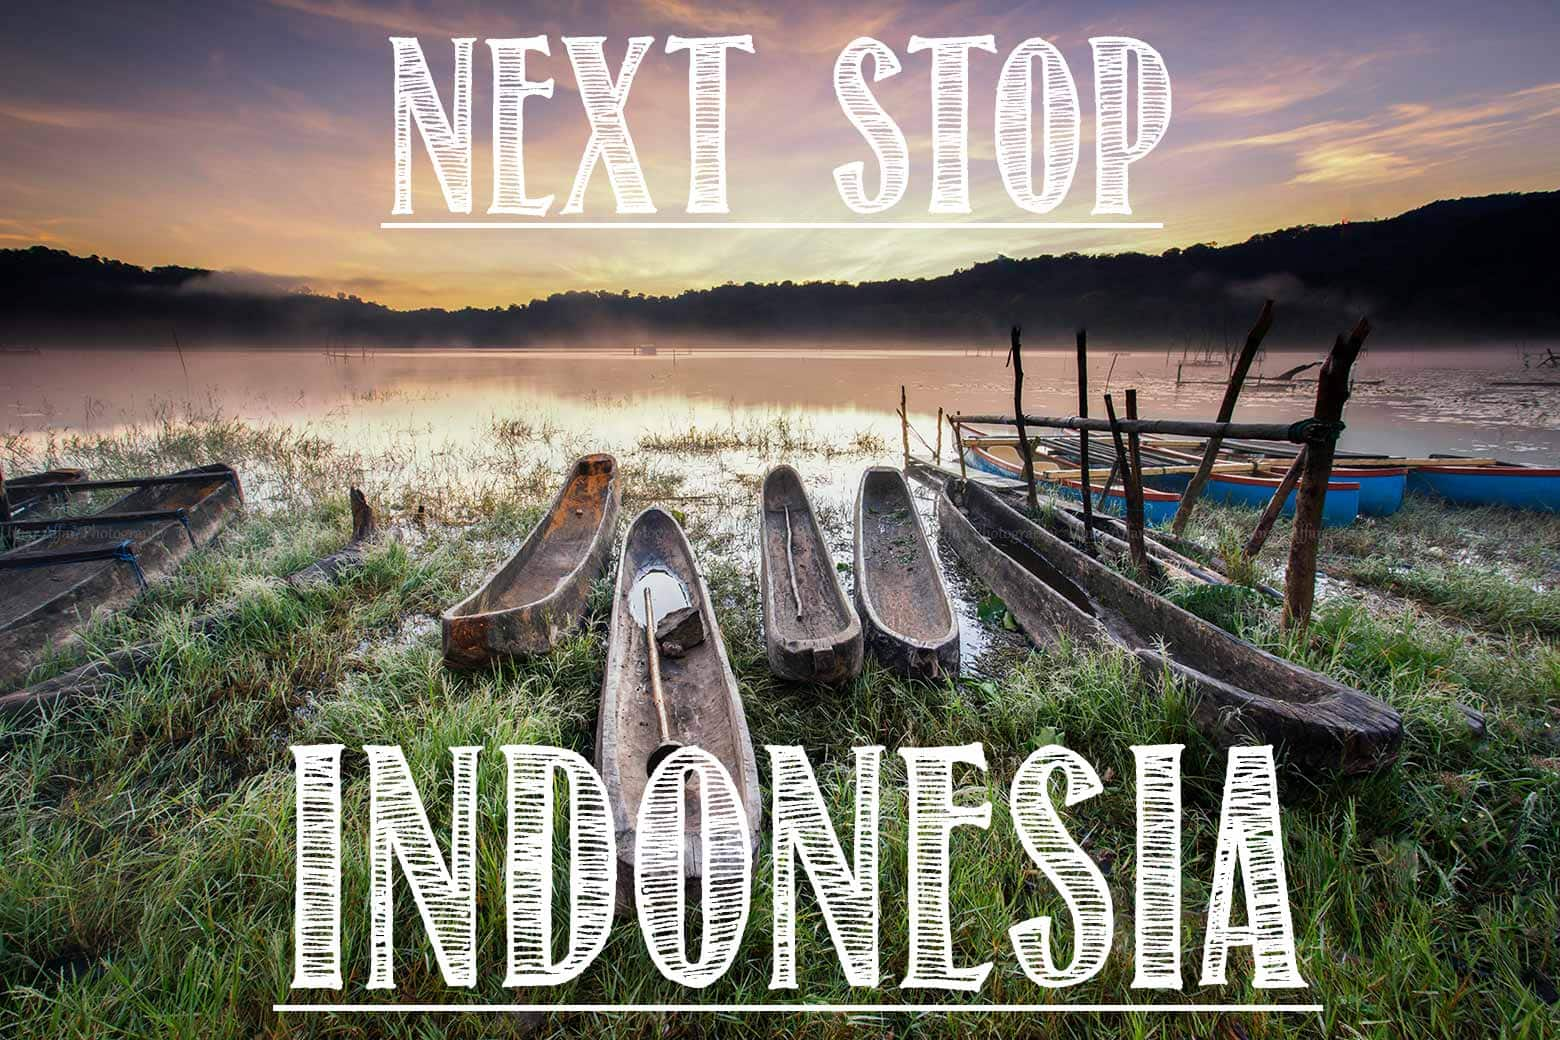 indonesia picture with a text